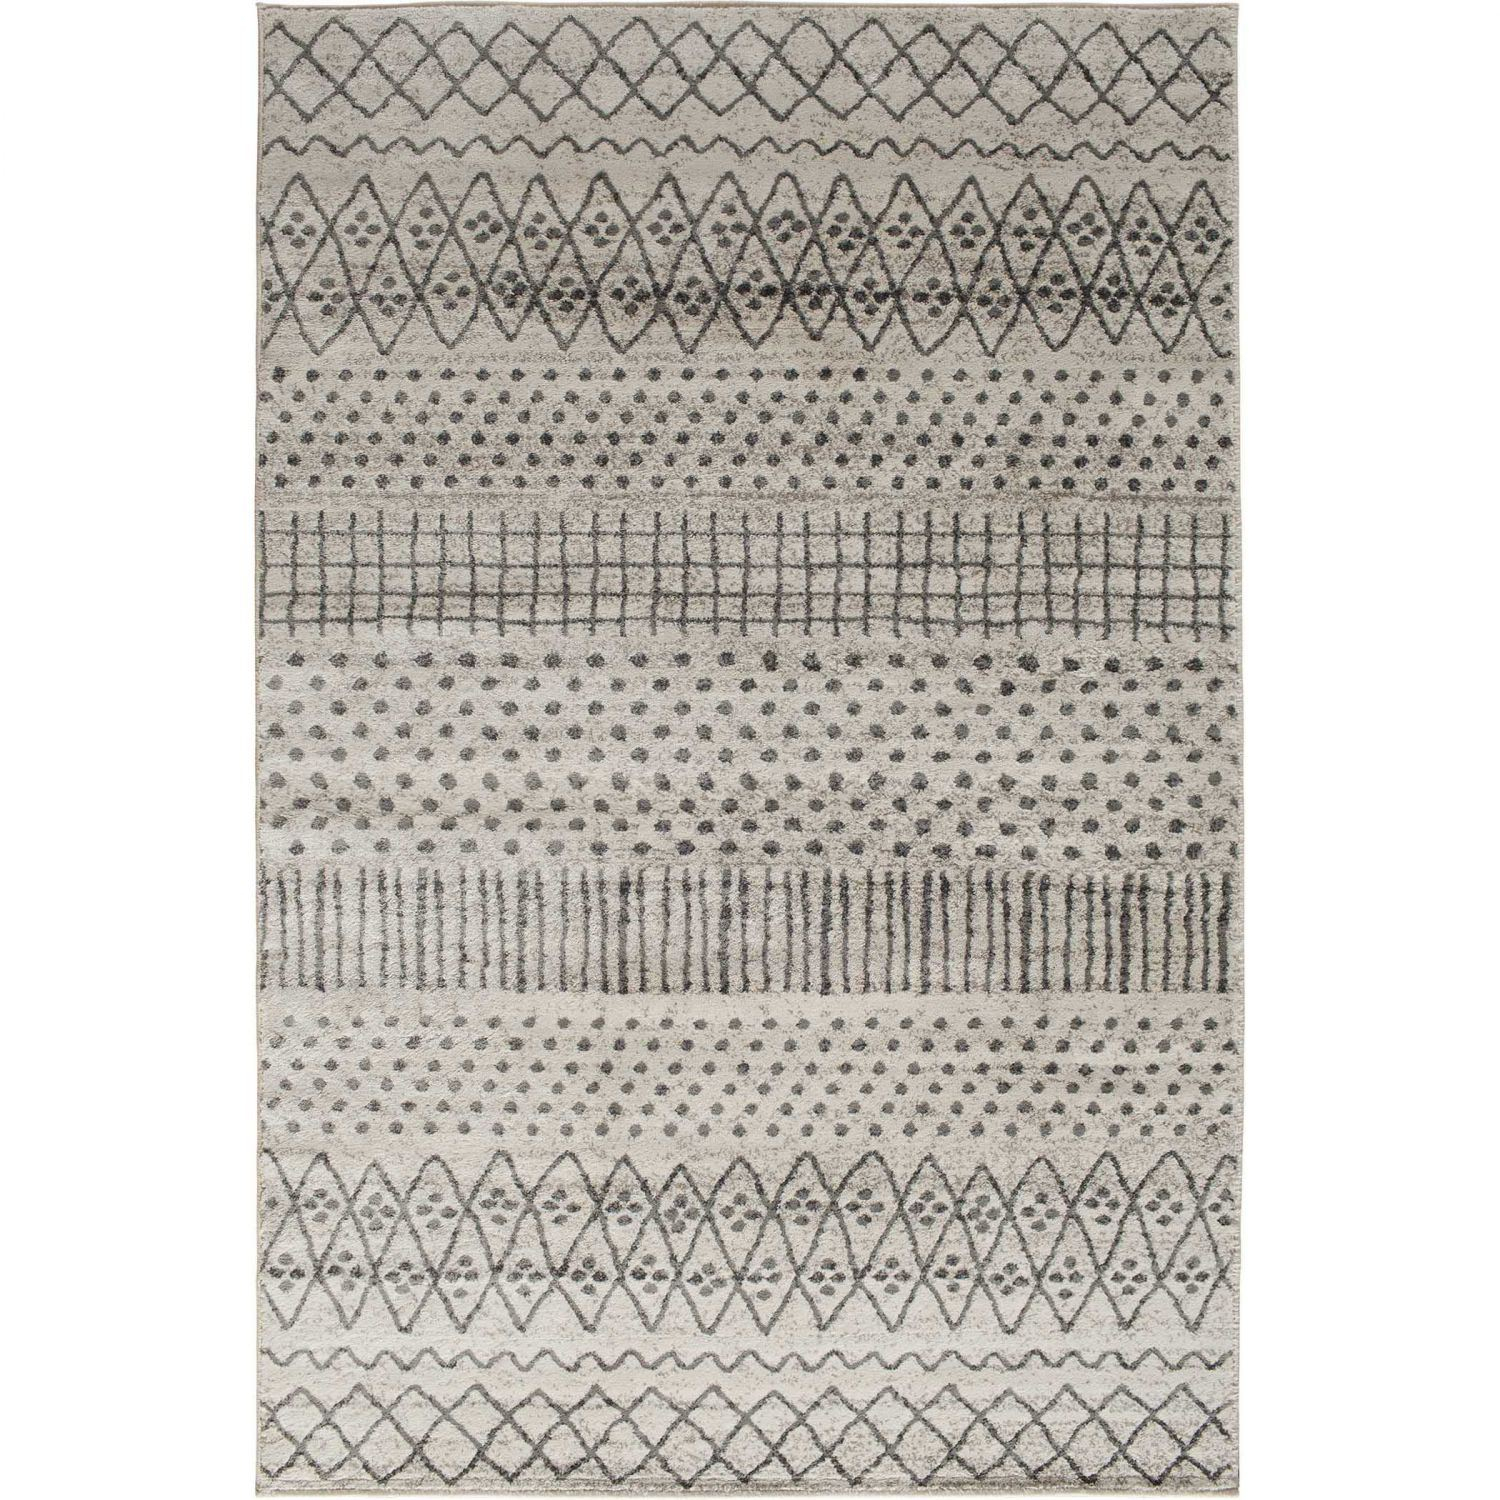 Corso Alvis Birch Rug Intended For Alvis Traditional Metal Wall Decor (View 15 of 30)